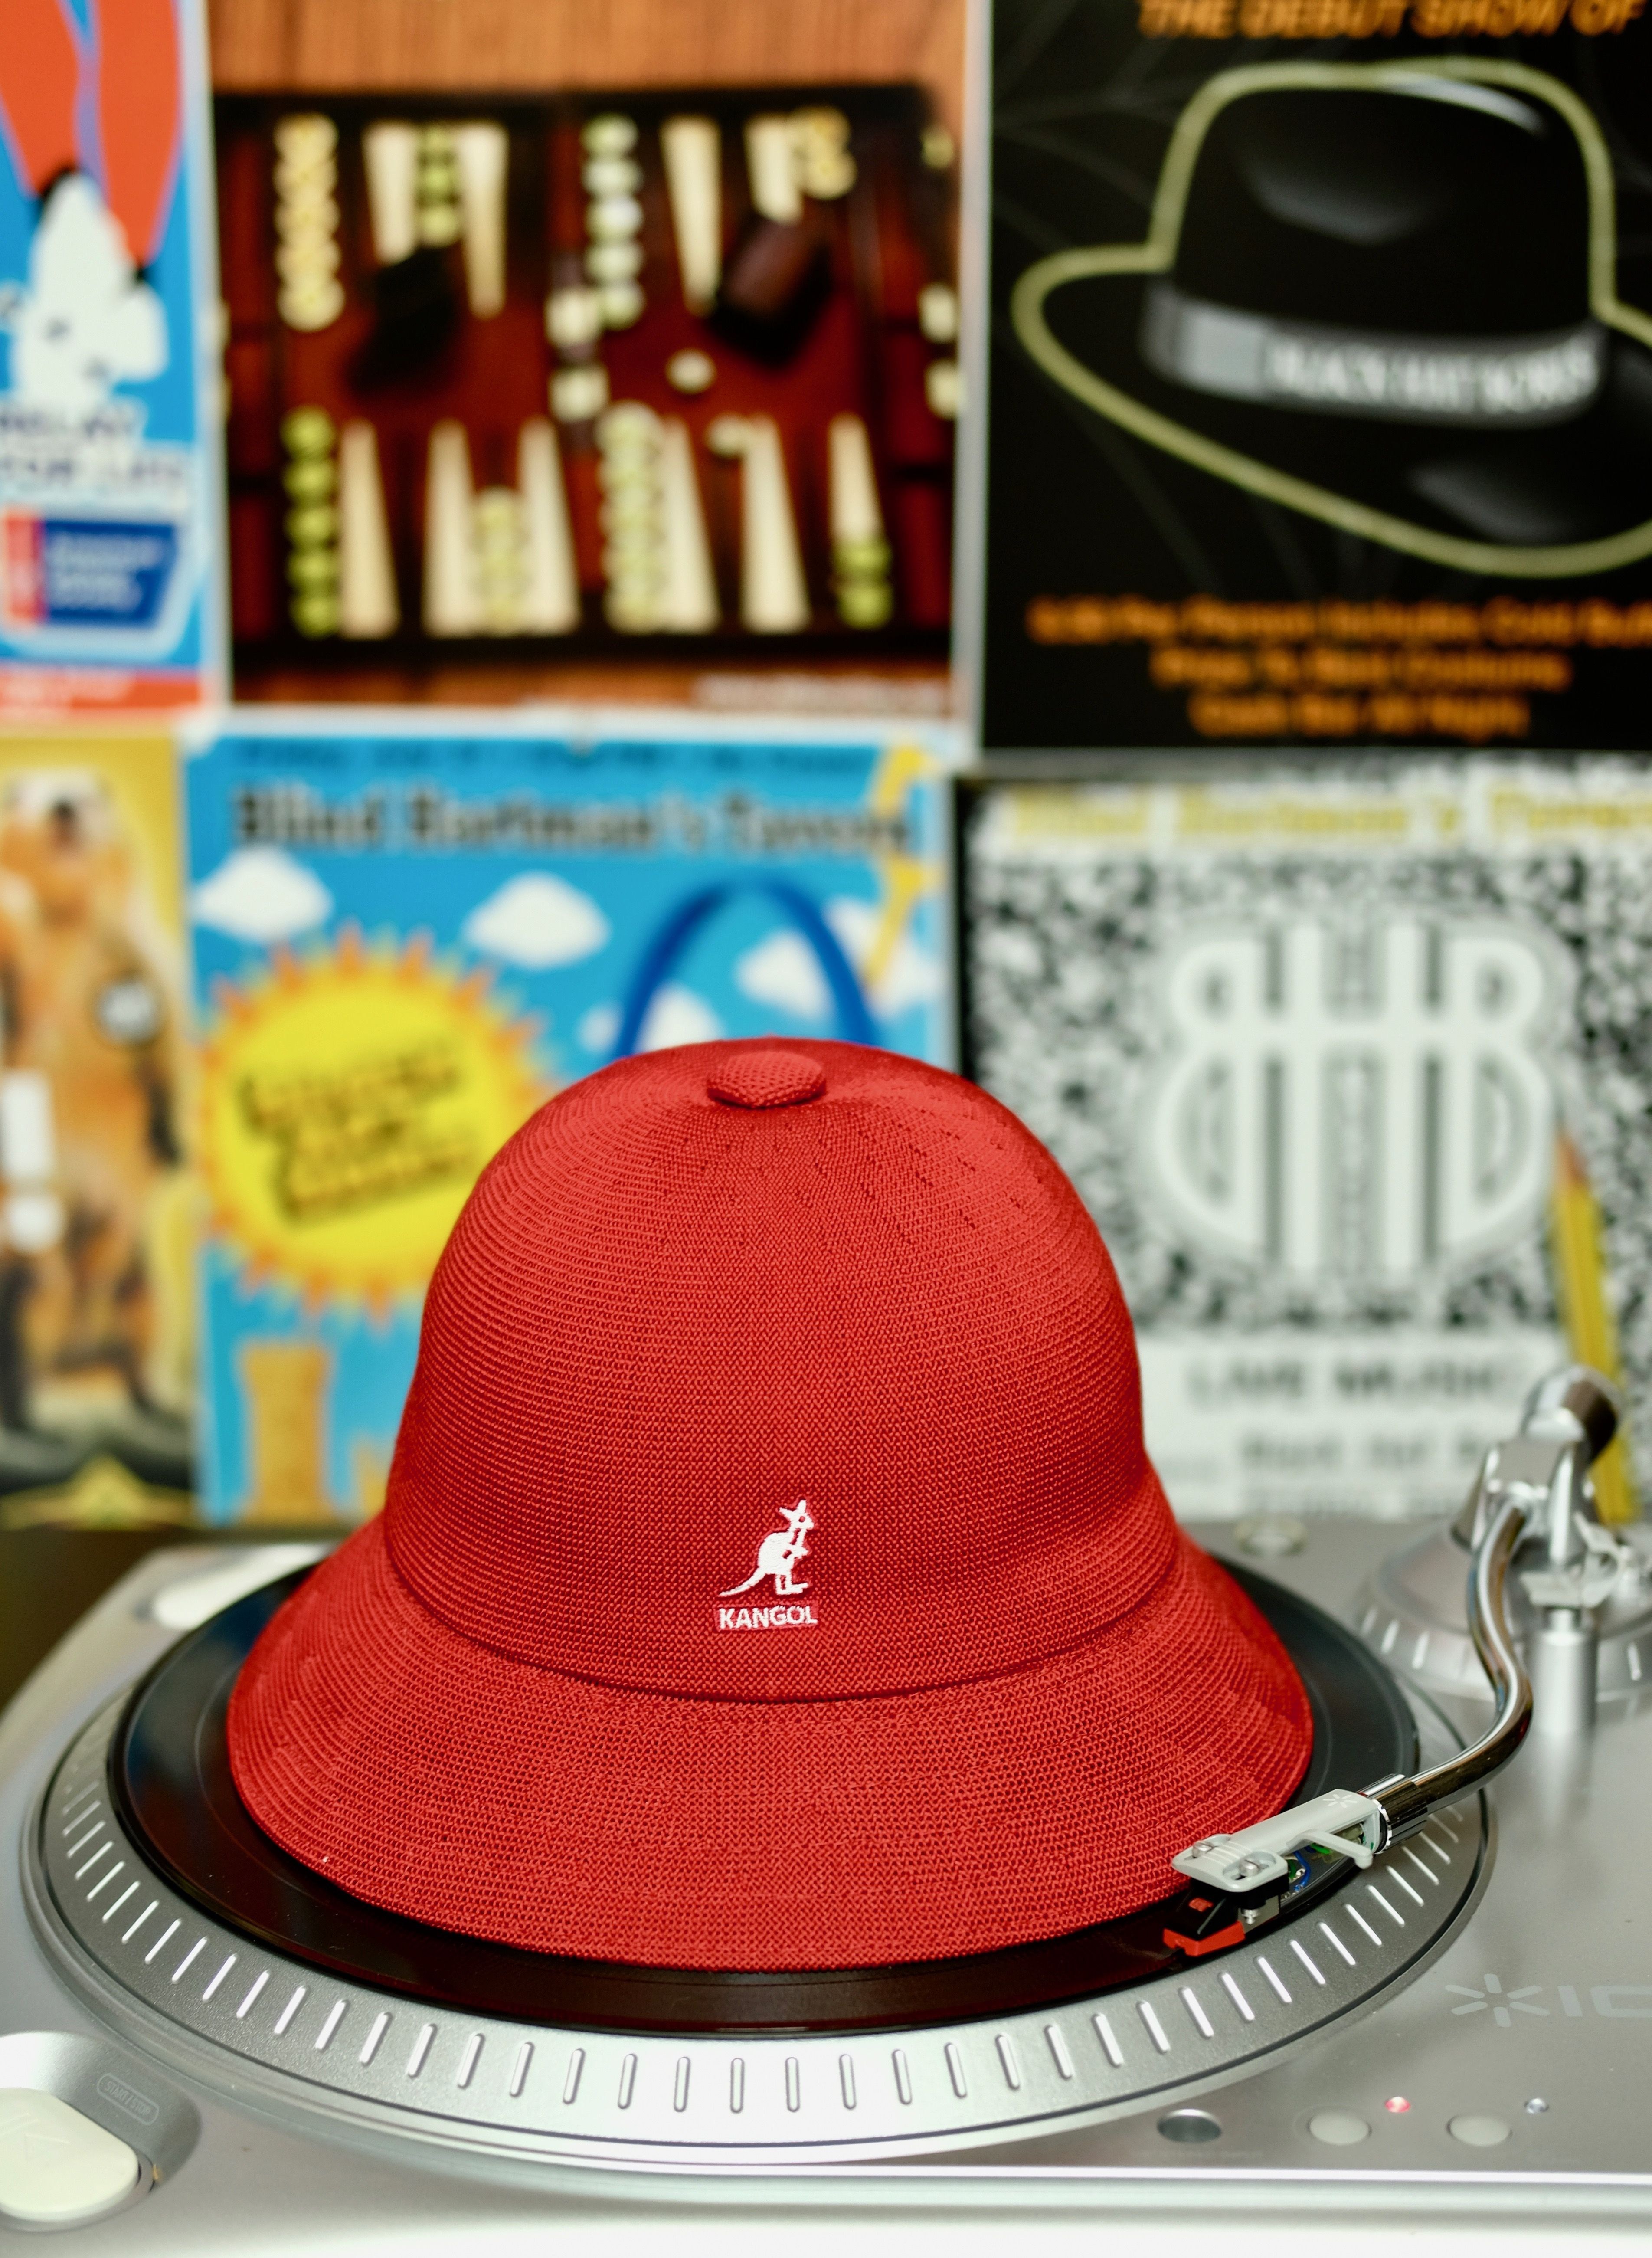 7f0613a038f The KANGOL Tropic Casual is a version of the original iconic hat that was  on the scene when turntablists